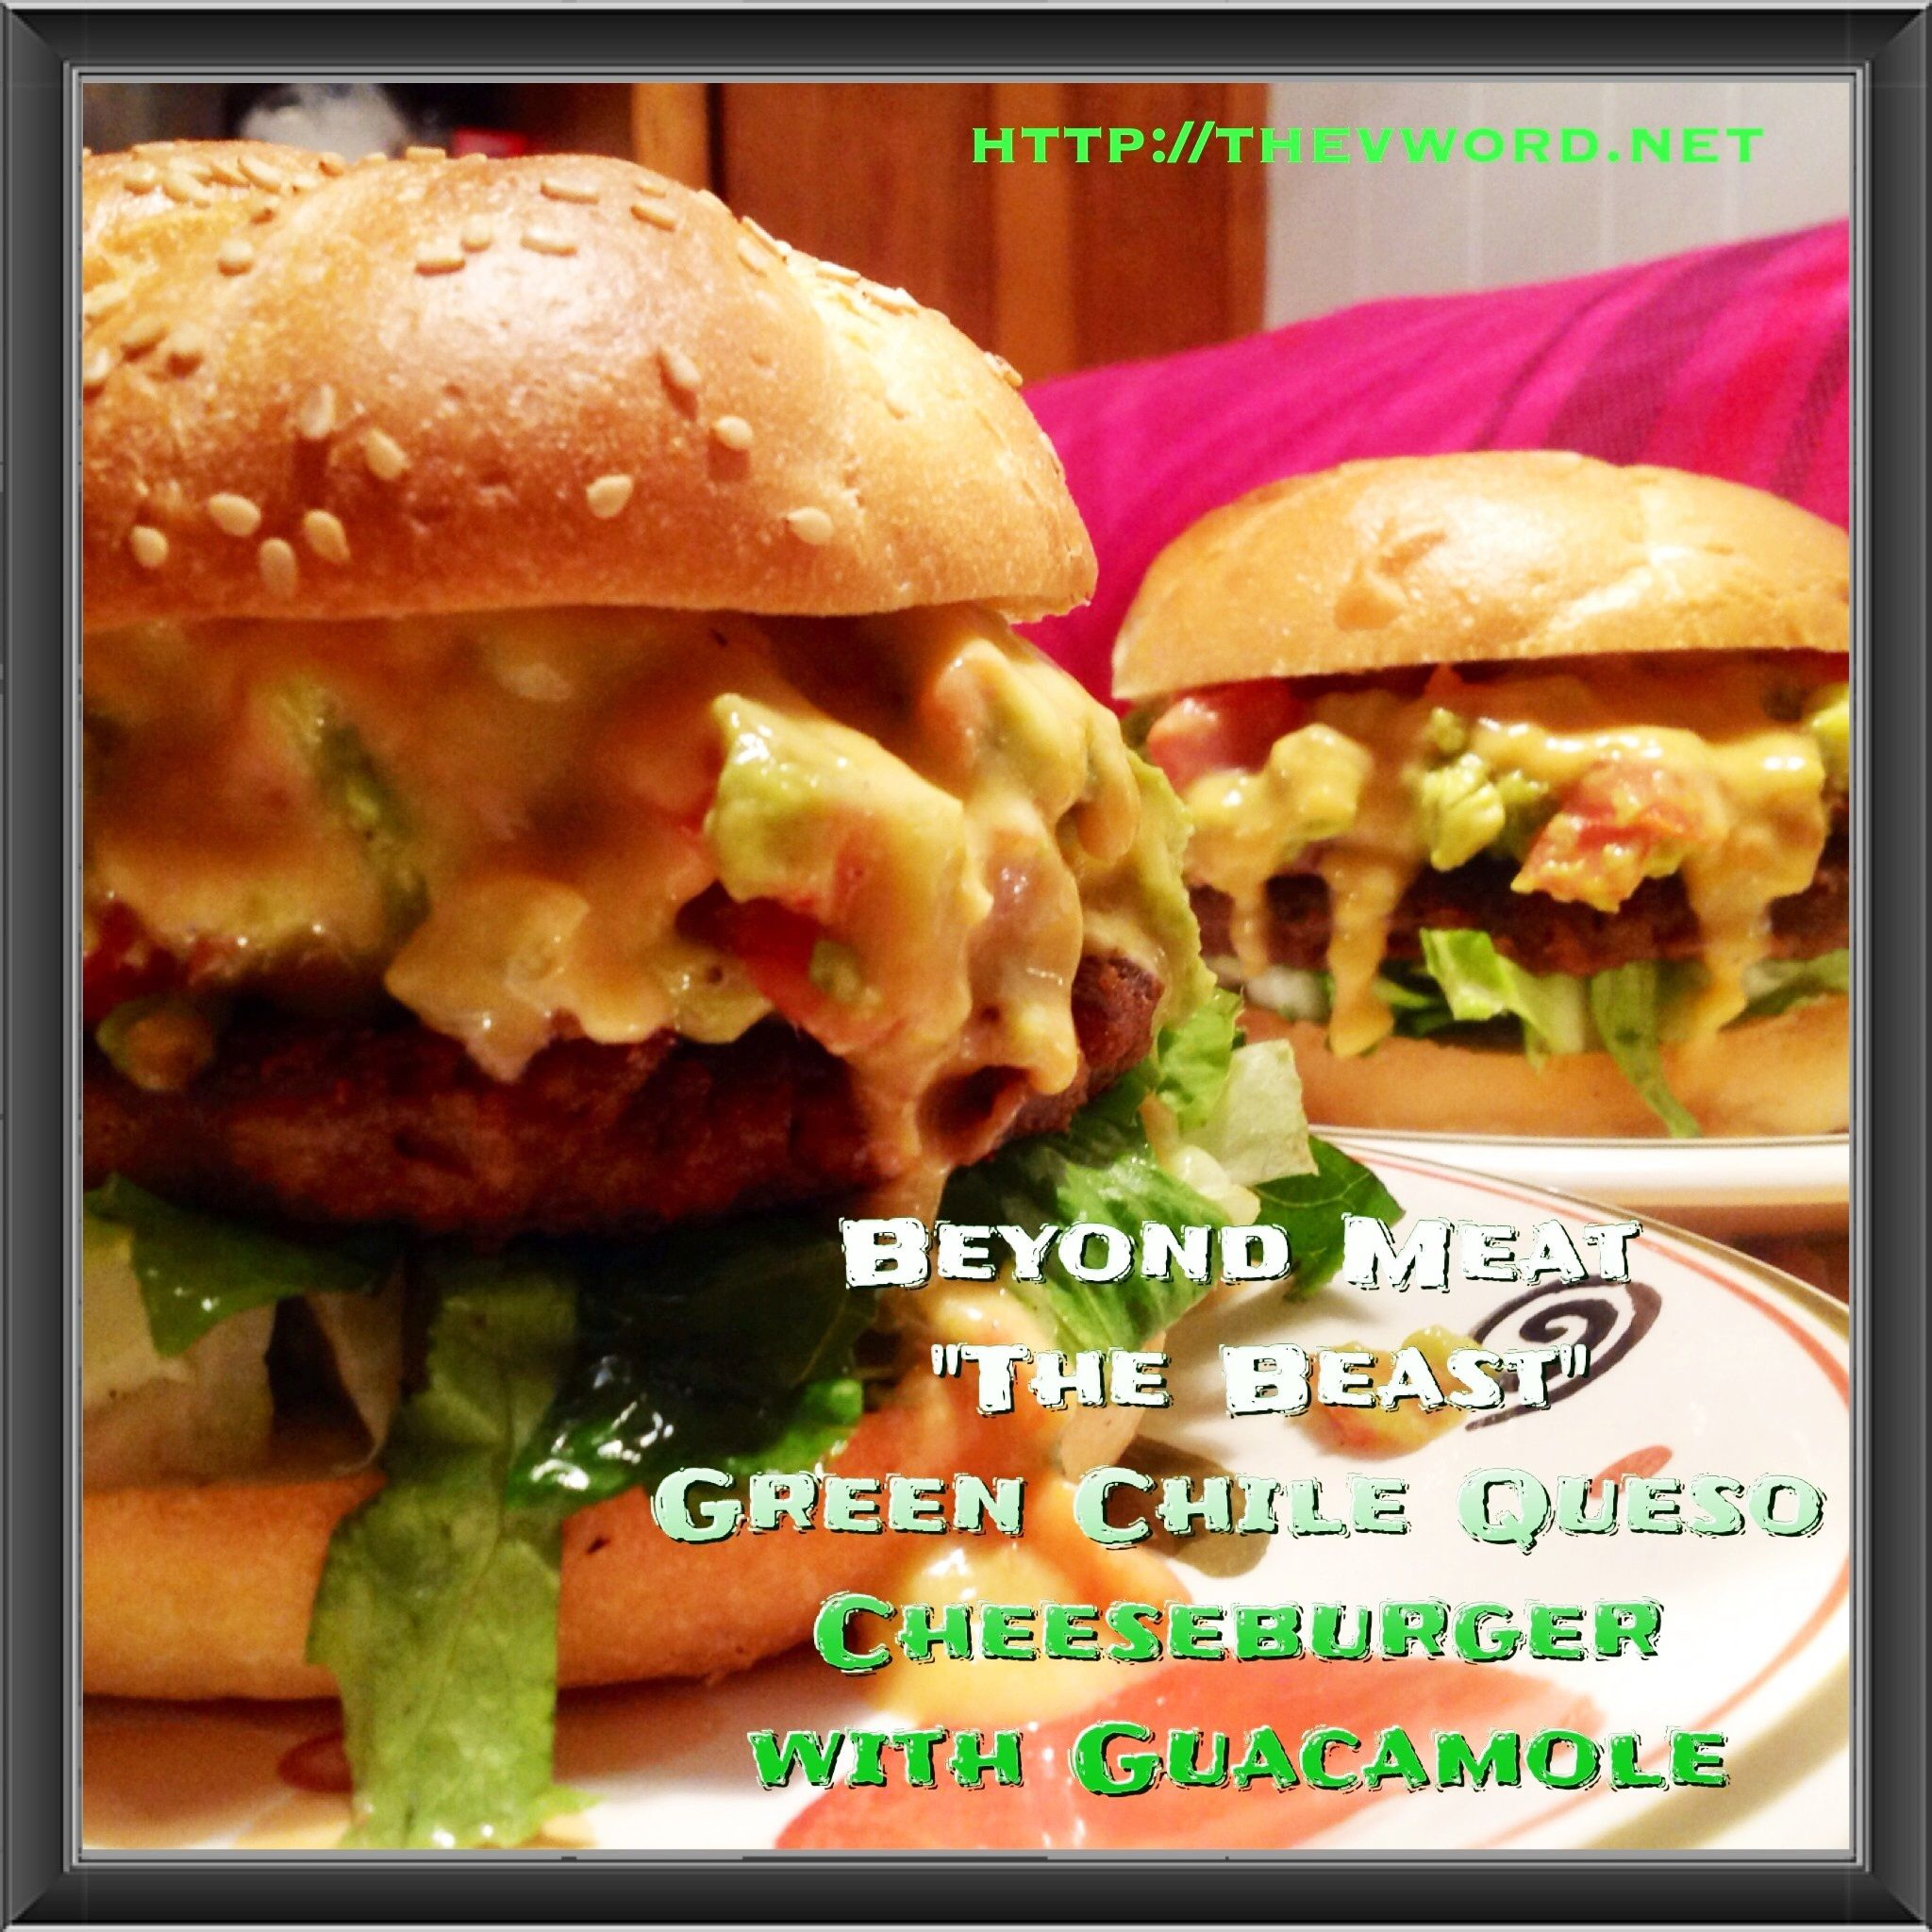 "New recipe & review on The ""V"" Word: Green Chile Queso Beast Burger with Guacamole with Beyond Meat​ 's new Beast Burger. Unleash your beast! Please share and enjoy! http://thevword.net/2015/02/green-chile-queso-beast-burger-with-guacamole.html"